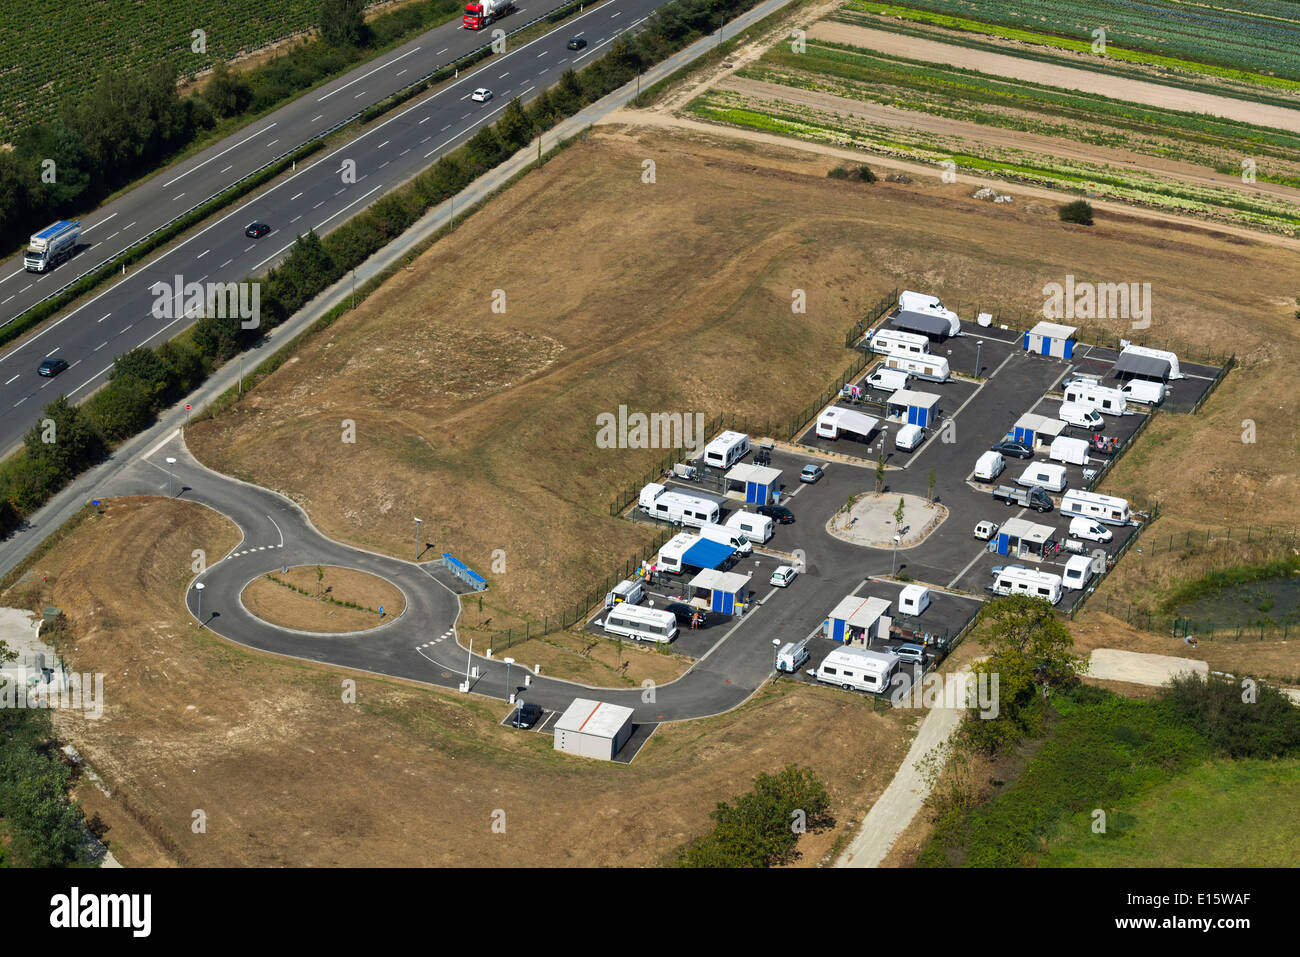 Permanent gypsy / traveller site - Stock Image